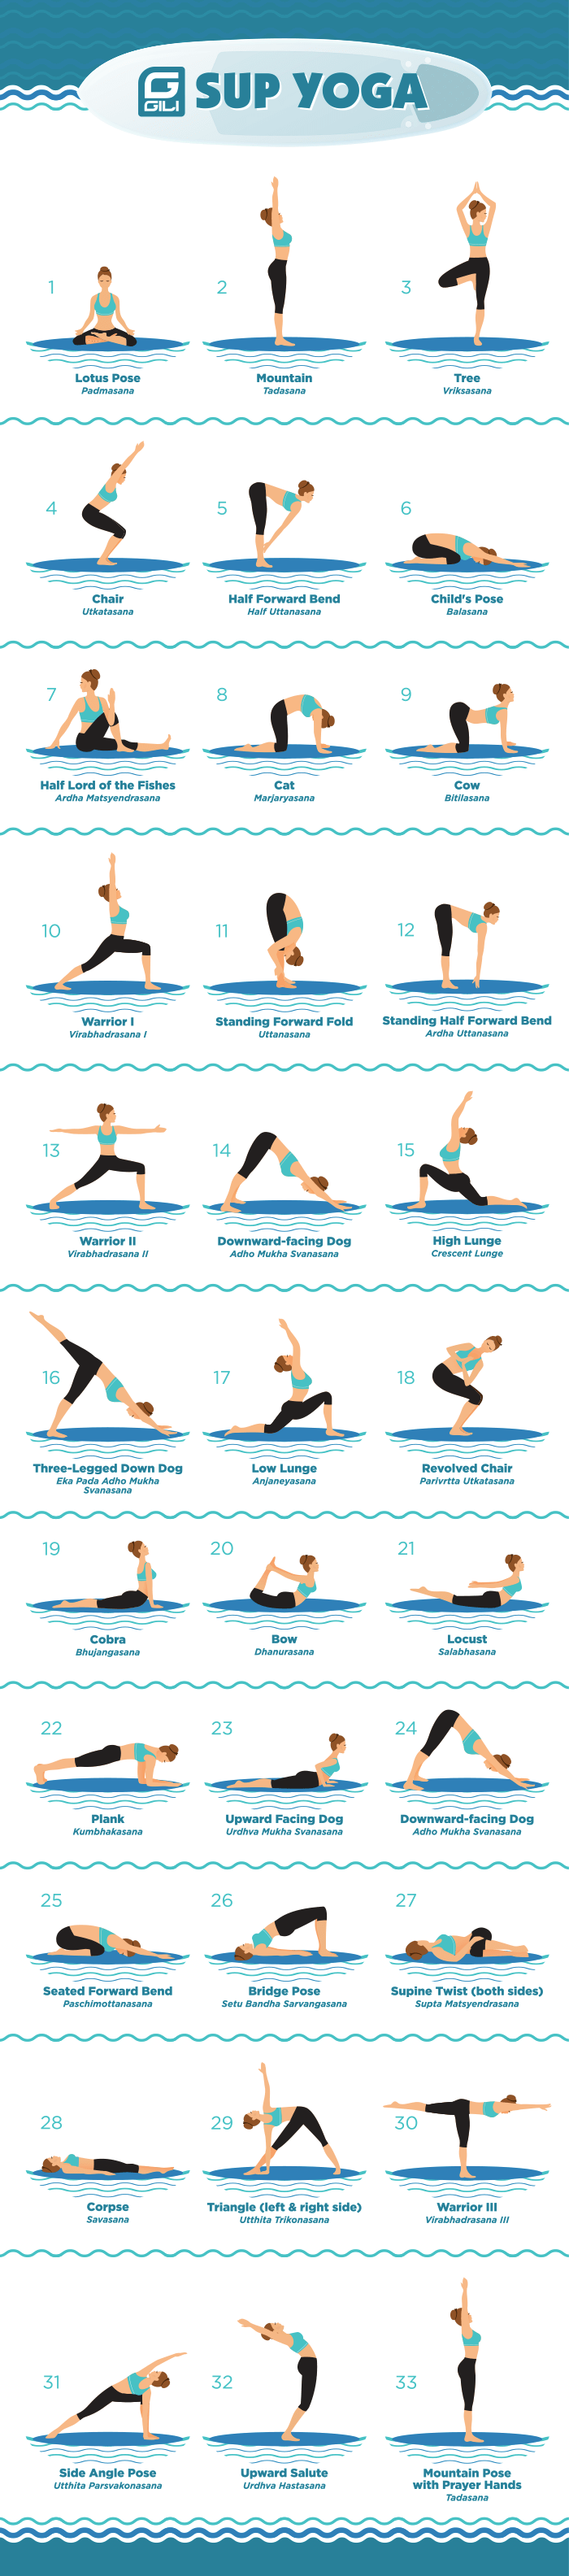 Sample SUP Yoga Routine